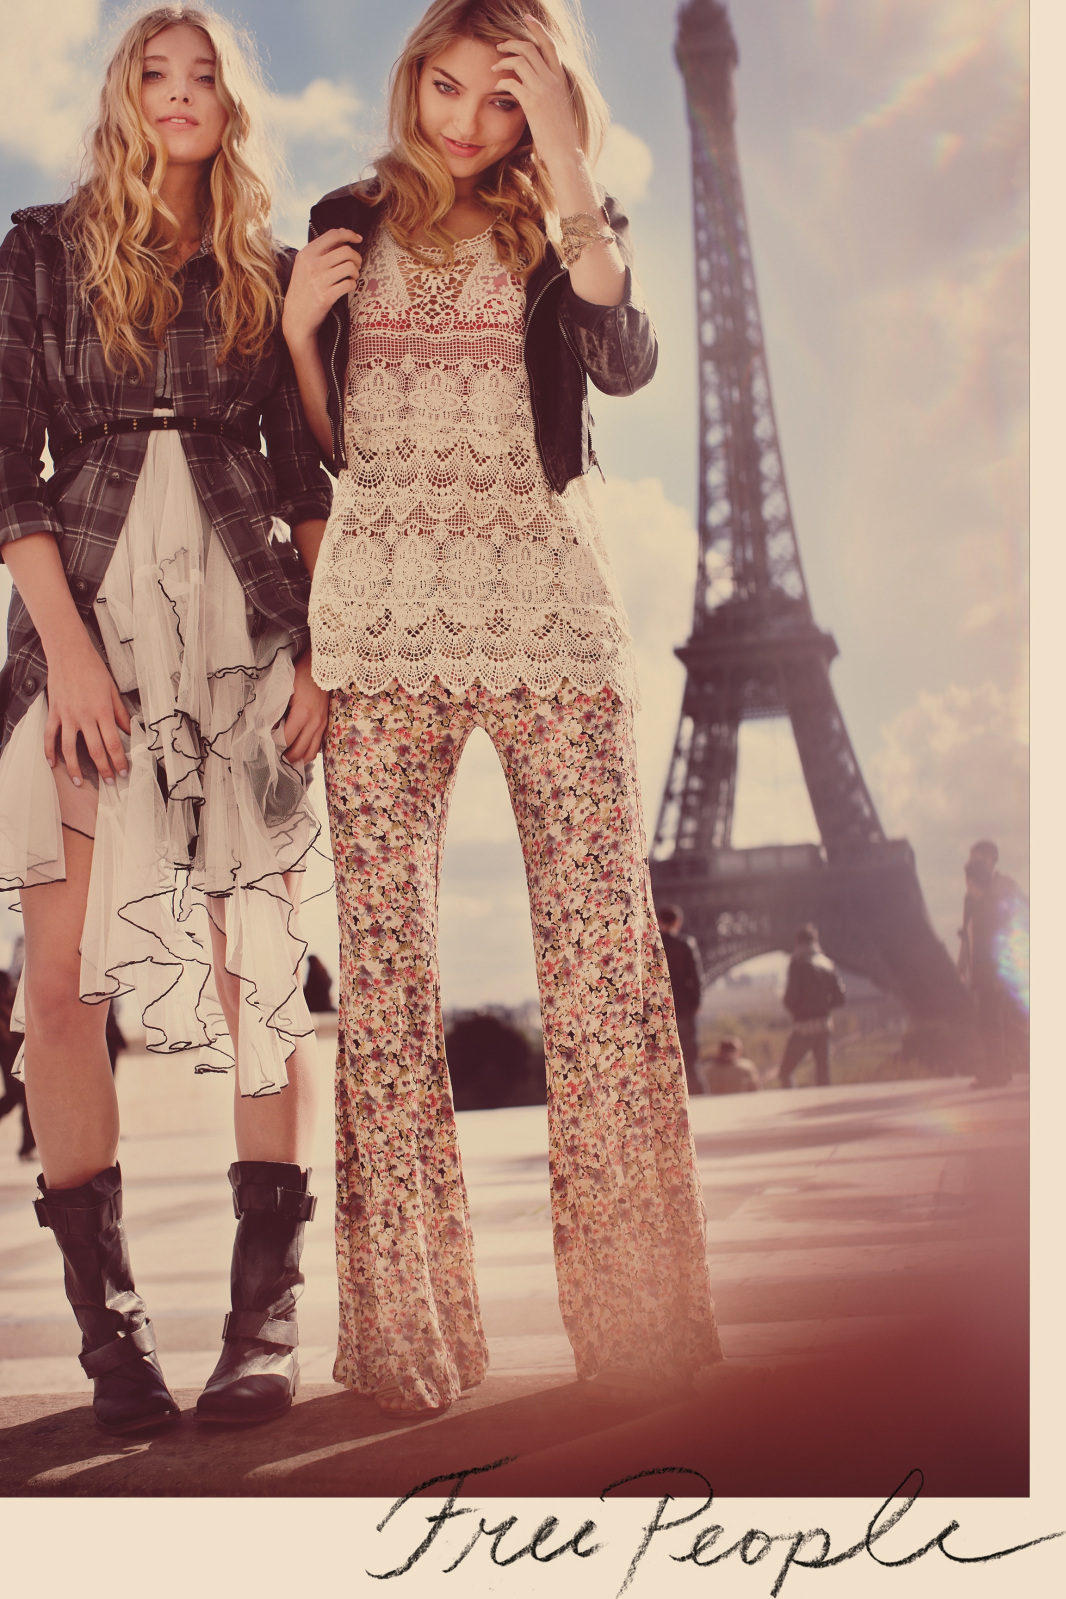 beauty, blonde, eiffel tower, fashion, france